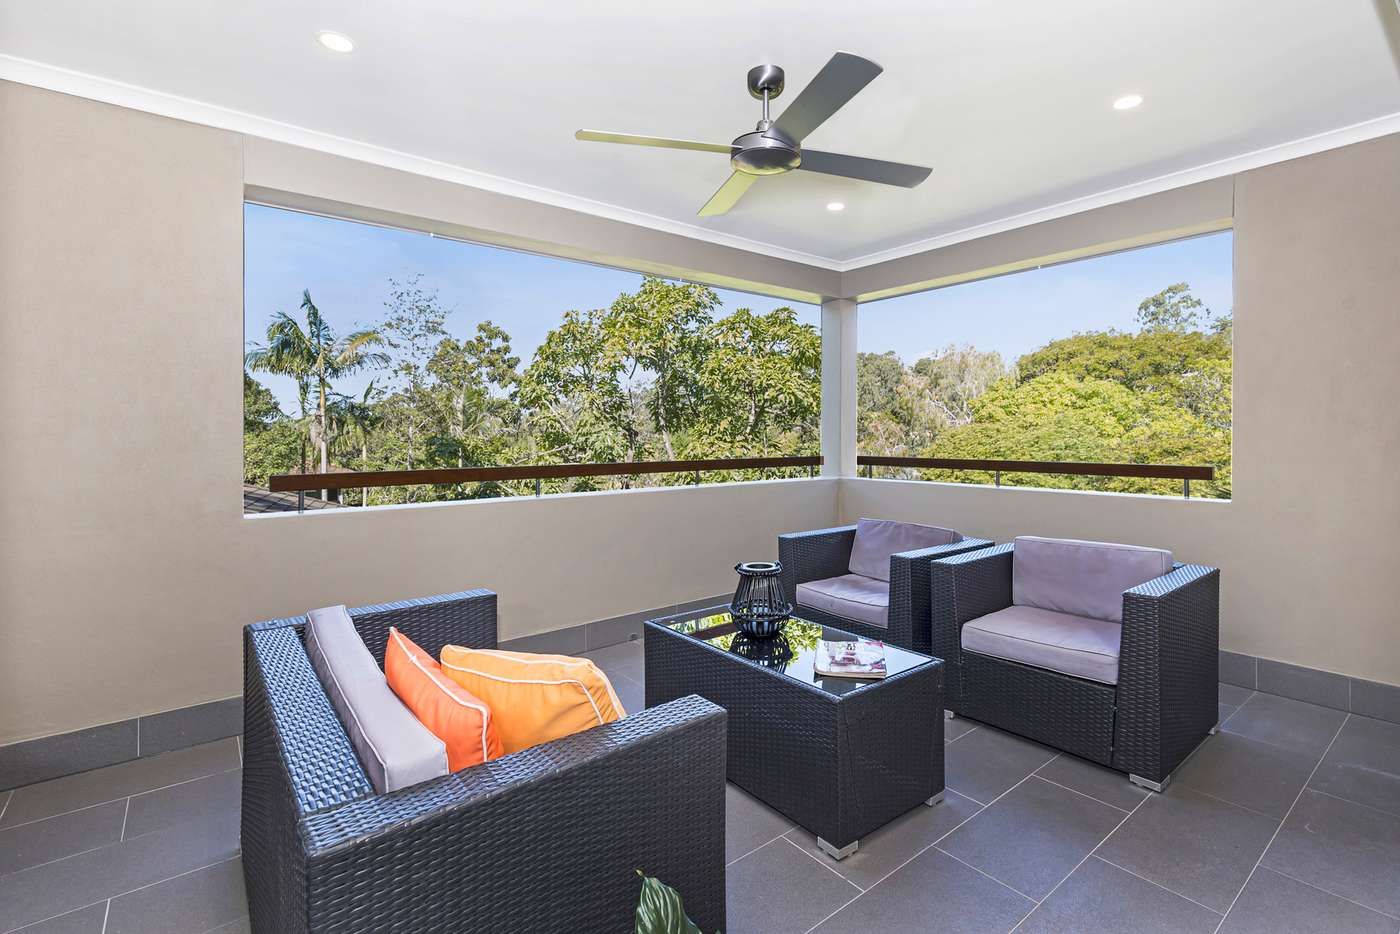 Sixth view of Homely house listing, 7 Warenda Street, Carina Heights QLD 4152